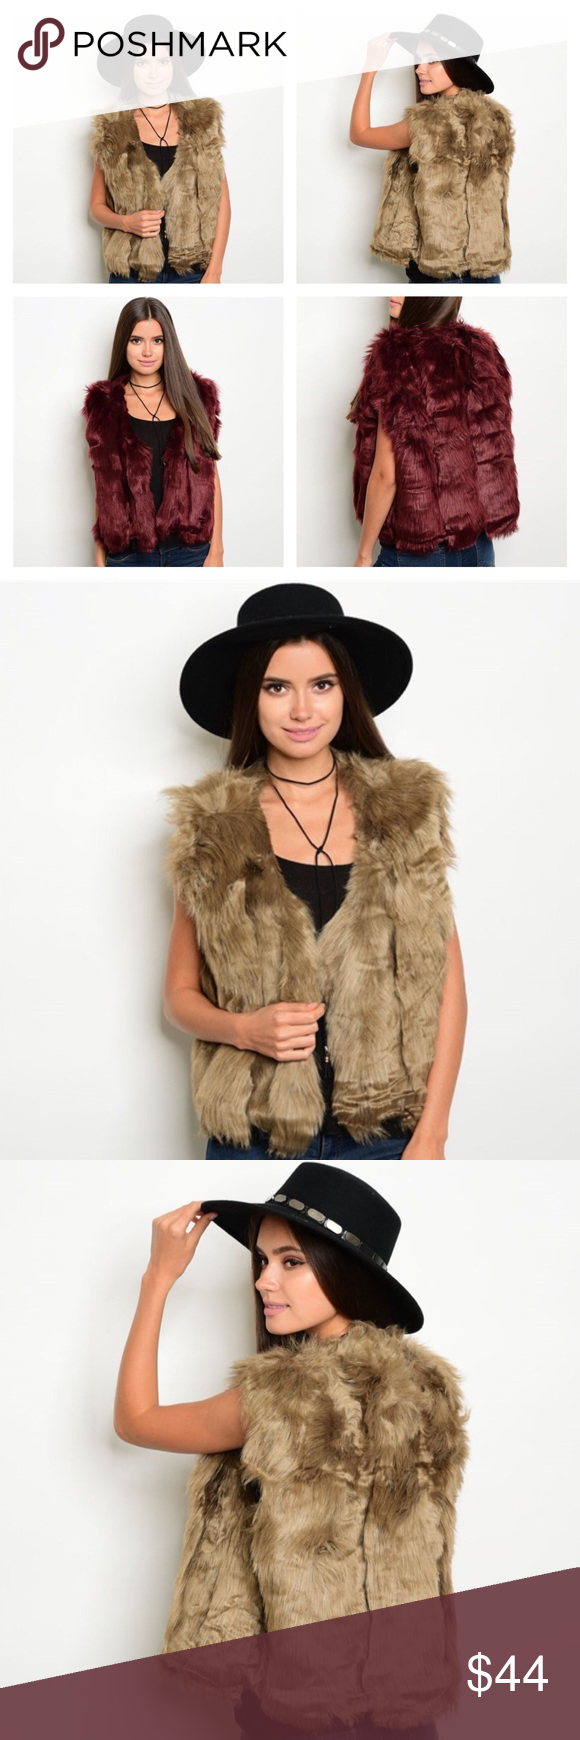 "LUXURIOUS FAUX FUR VEST- BURGUNDY OR CAMEL FABULOUS, LUXURIOUS, THICK AND LUSH FAUX FUR VEST. AVAILABLE IN CAMEL OR TAN OR LIGHT BROWN. ALSO AVAILABLE IN BURGUNDY OR WINE OR MAROON. TWO COLORS AVAILABLE. FULLY LINED TO MATCH THE VEST COLOR WITH TWO HIDDEN HOOK CLOSURES ON THE FRONT.  SLEEVELESS AND ONE SIZE FITS MOST. PERFECT FOR ANY OCCASION. GREAT OVER SWEATERS OR TOPS FROM CASUAL TO FORMAL. LENGTH 22"" AND BUST MEASURED ARMPIT TO ARMPIT IS 21"" ACROSS THE FRONT Boutique Jackets & Coats…"